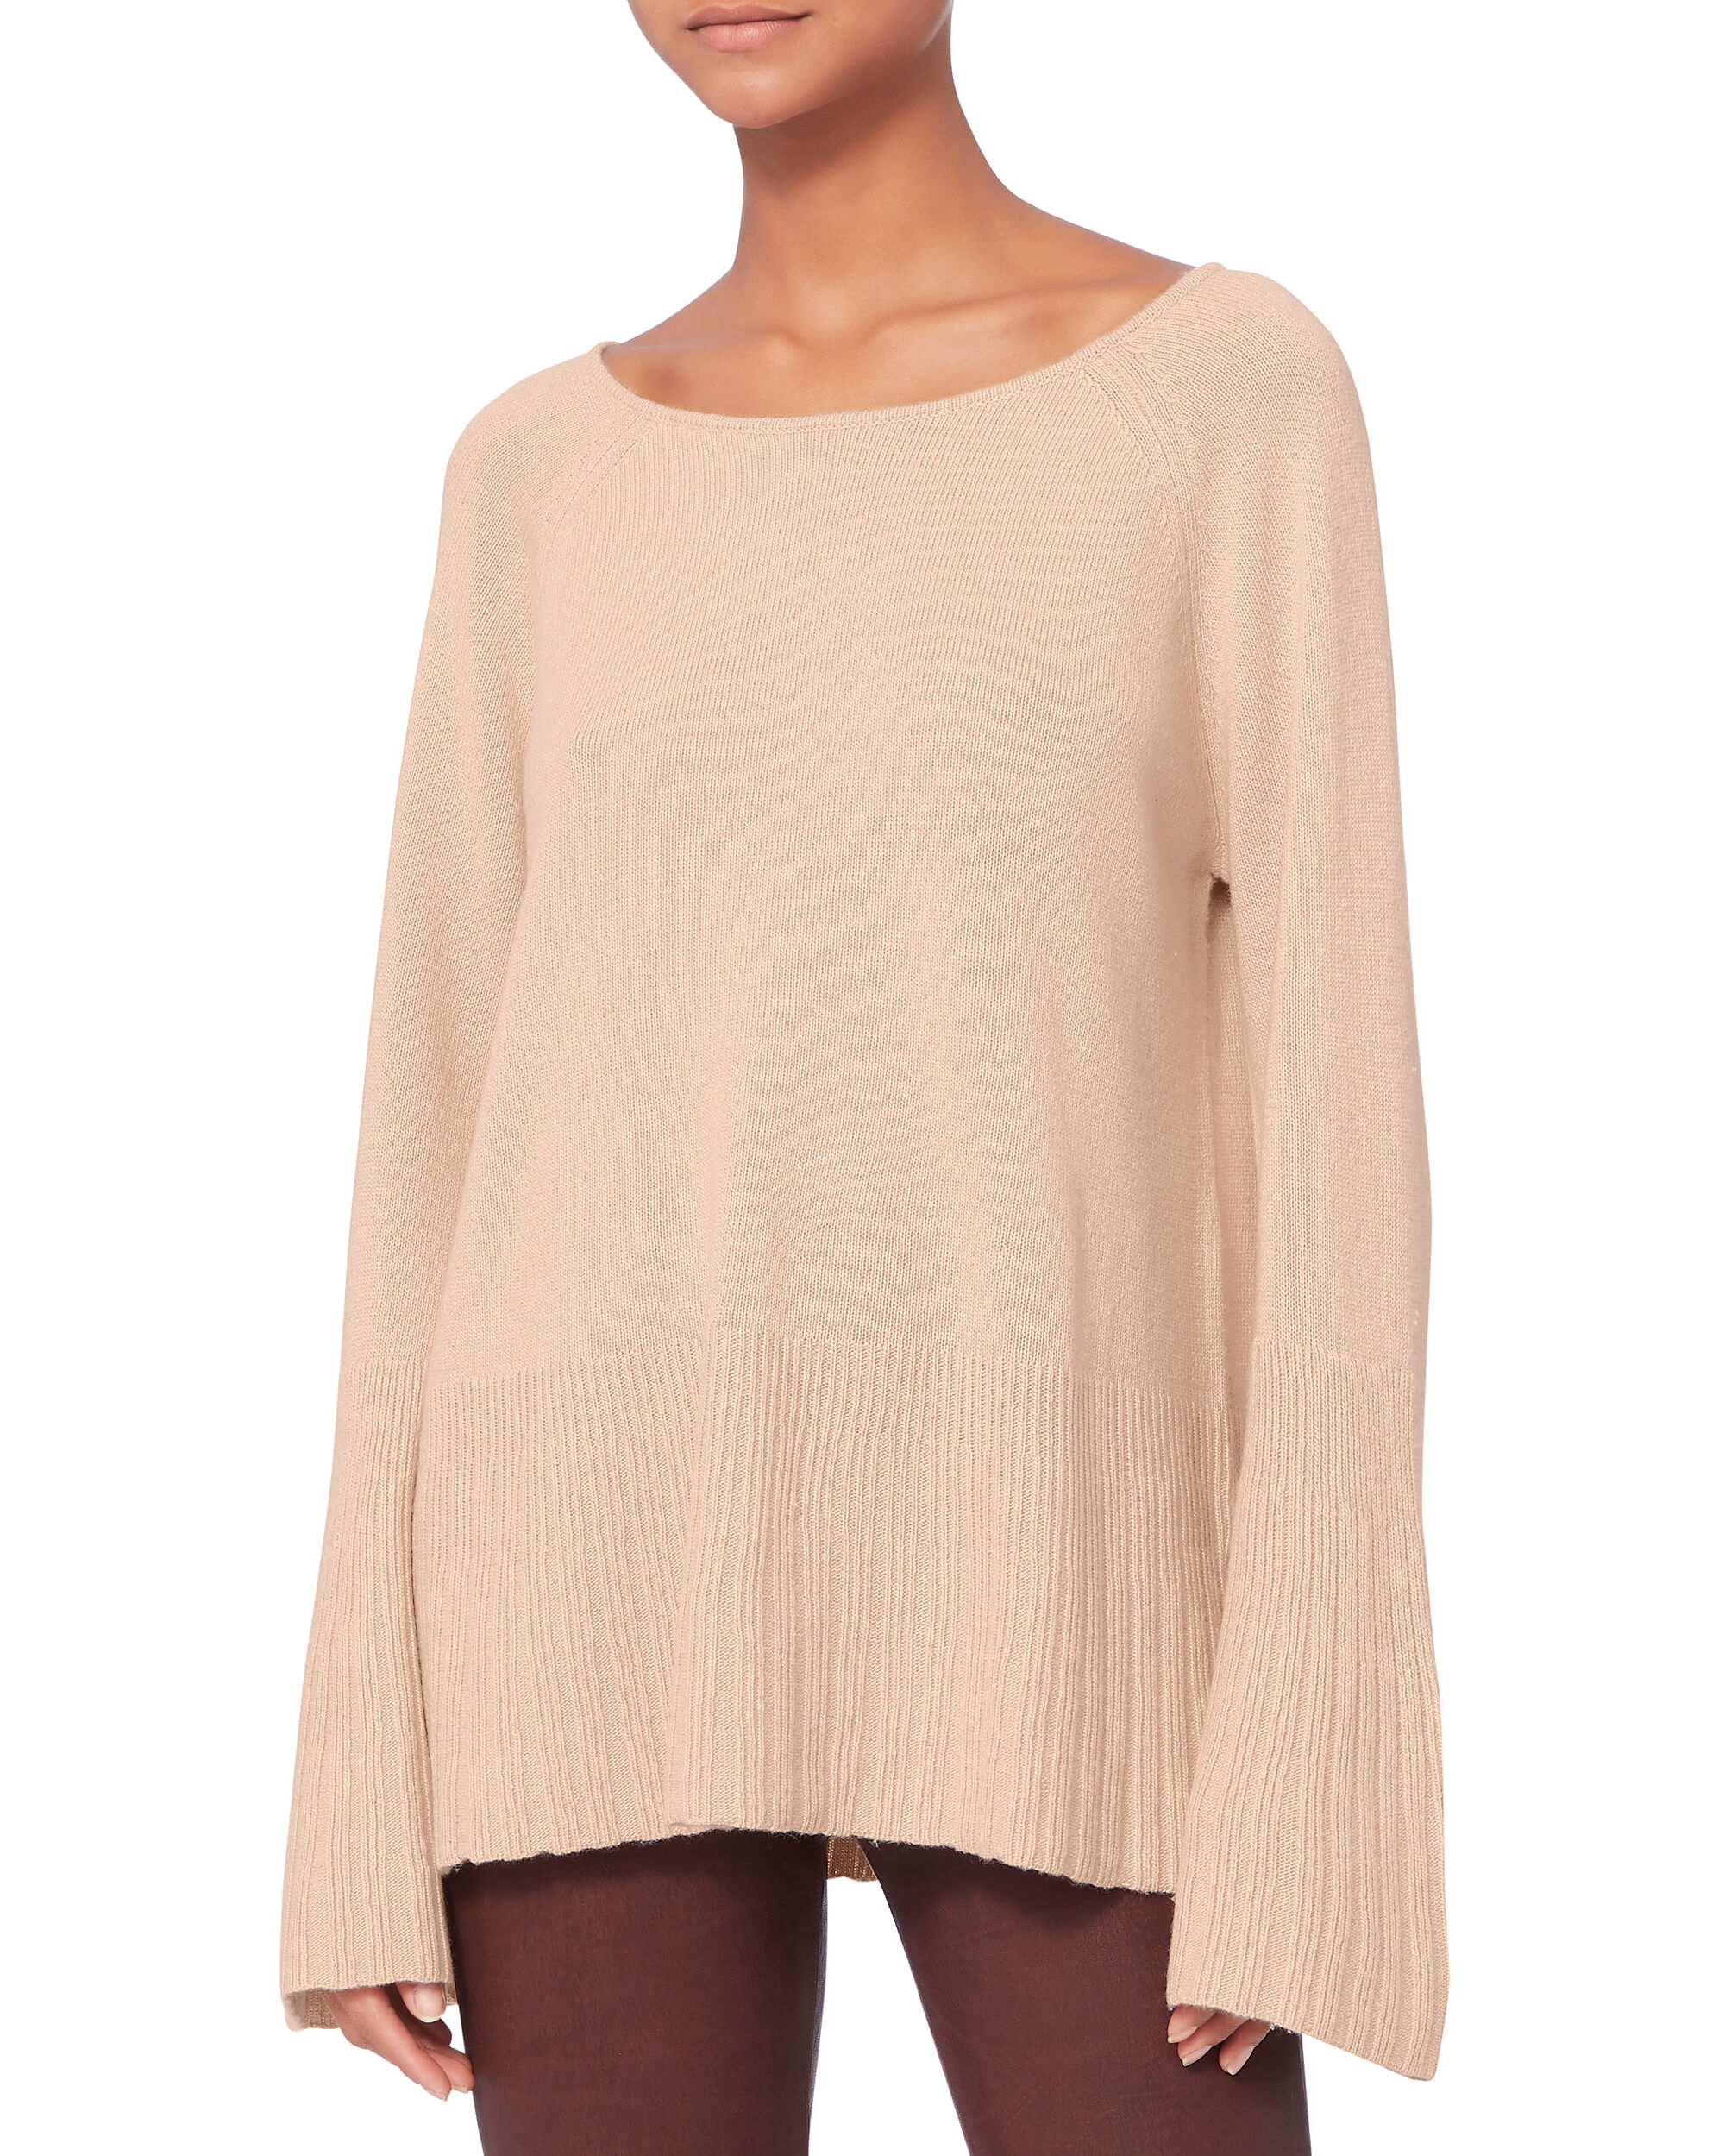 Clarette Bell Sleeve Sweater, NUDE, hi-res